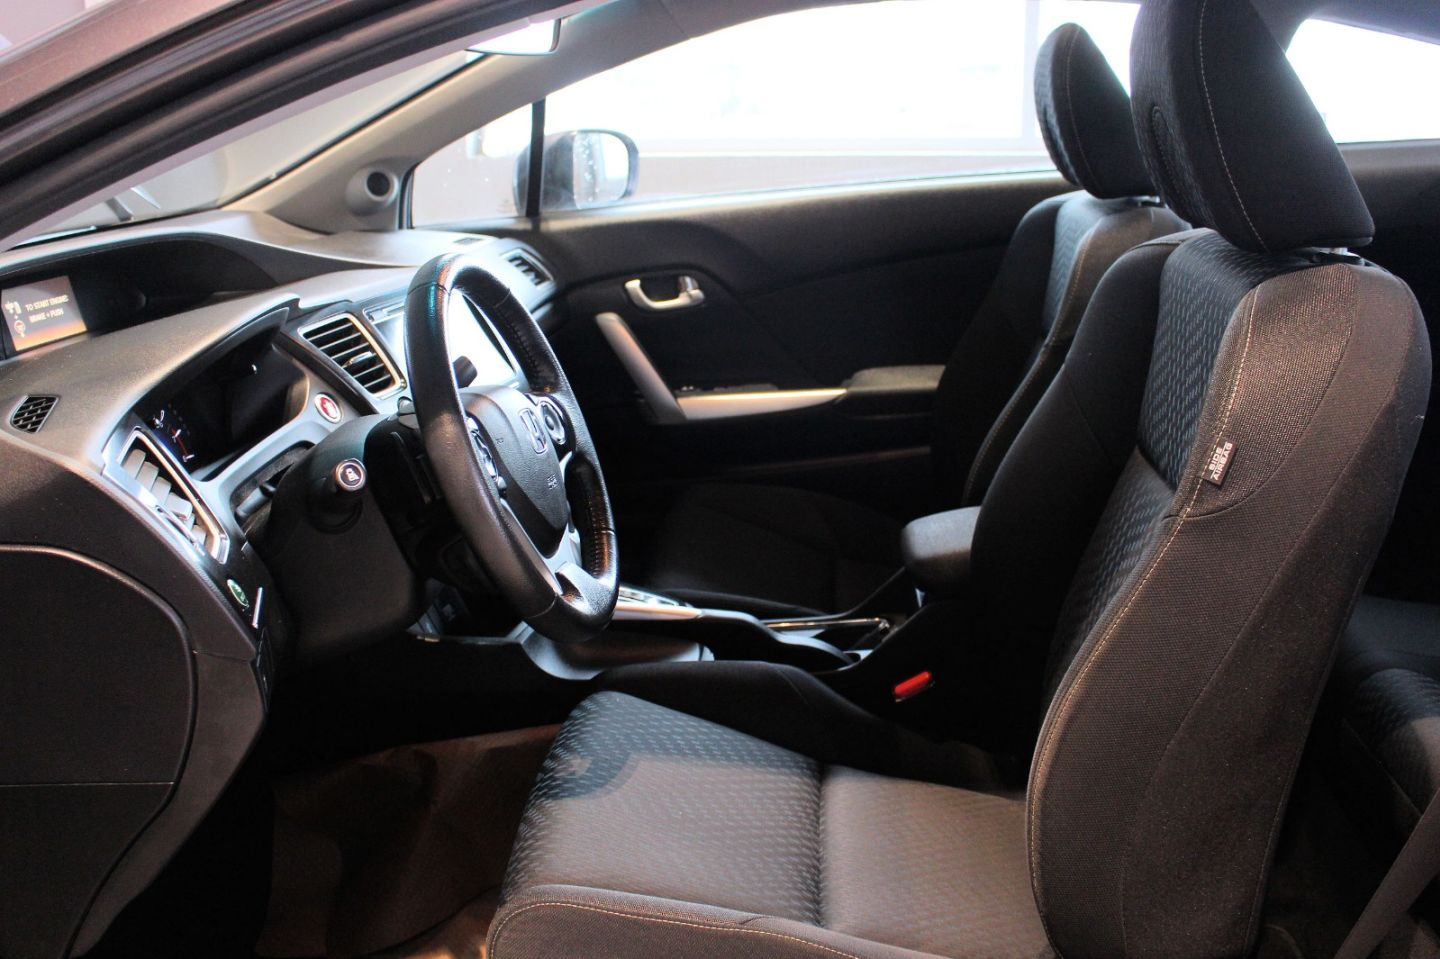 2015 Honda Civic Coupe EX for sale in Spruce Grove, Alberta